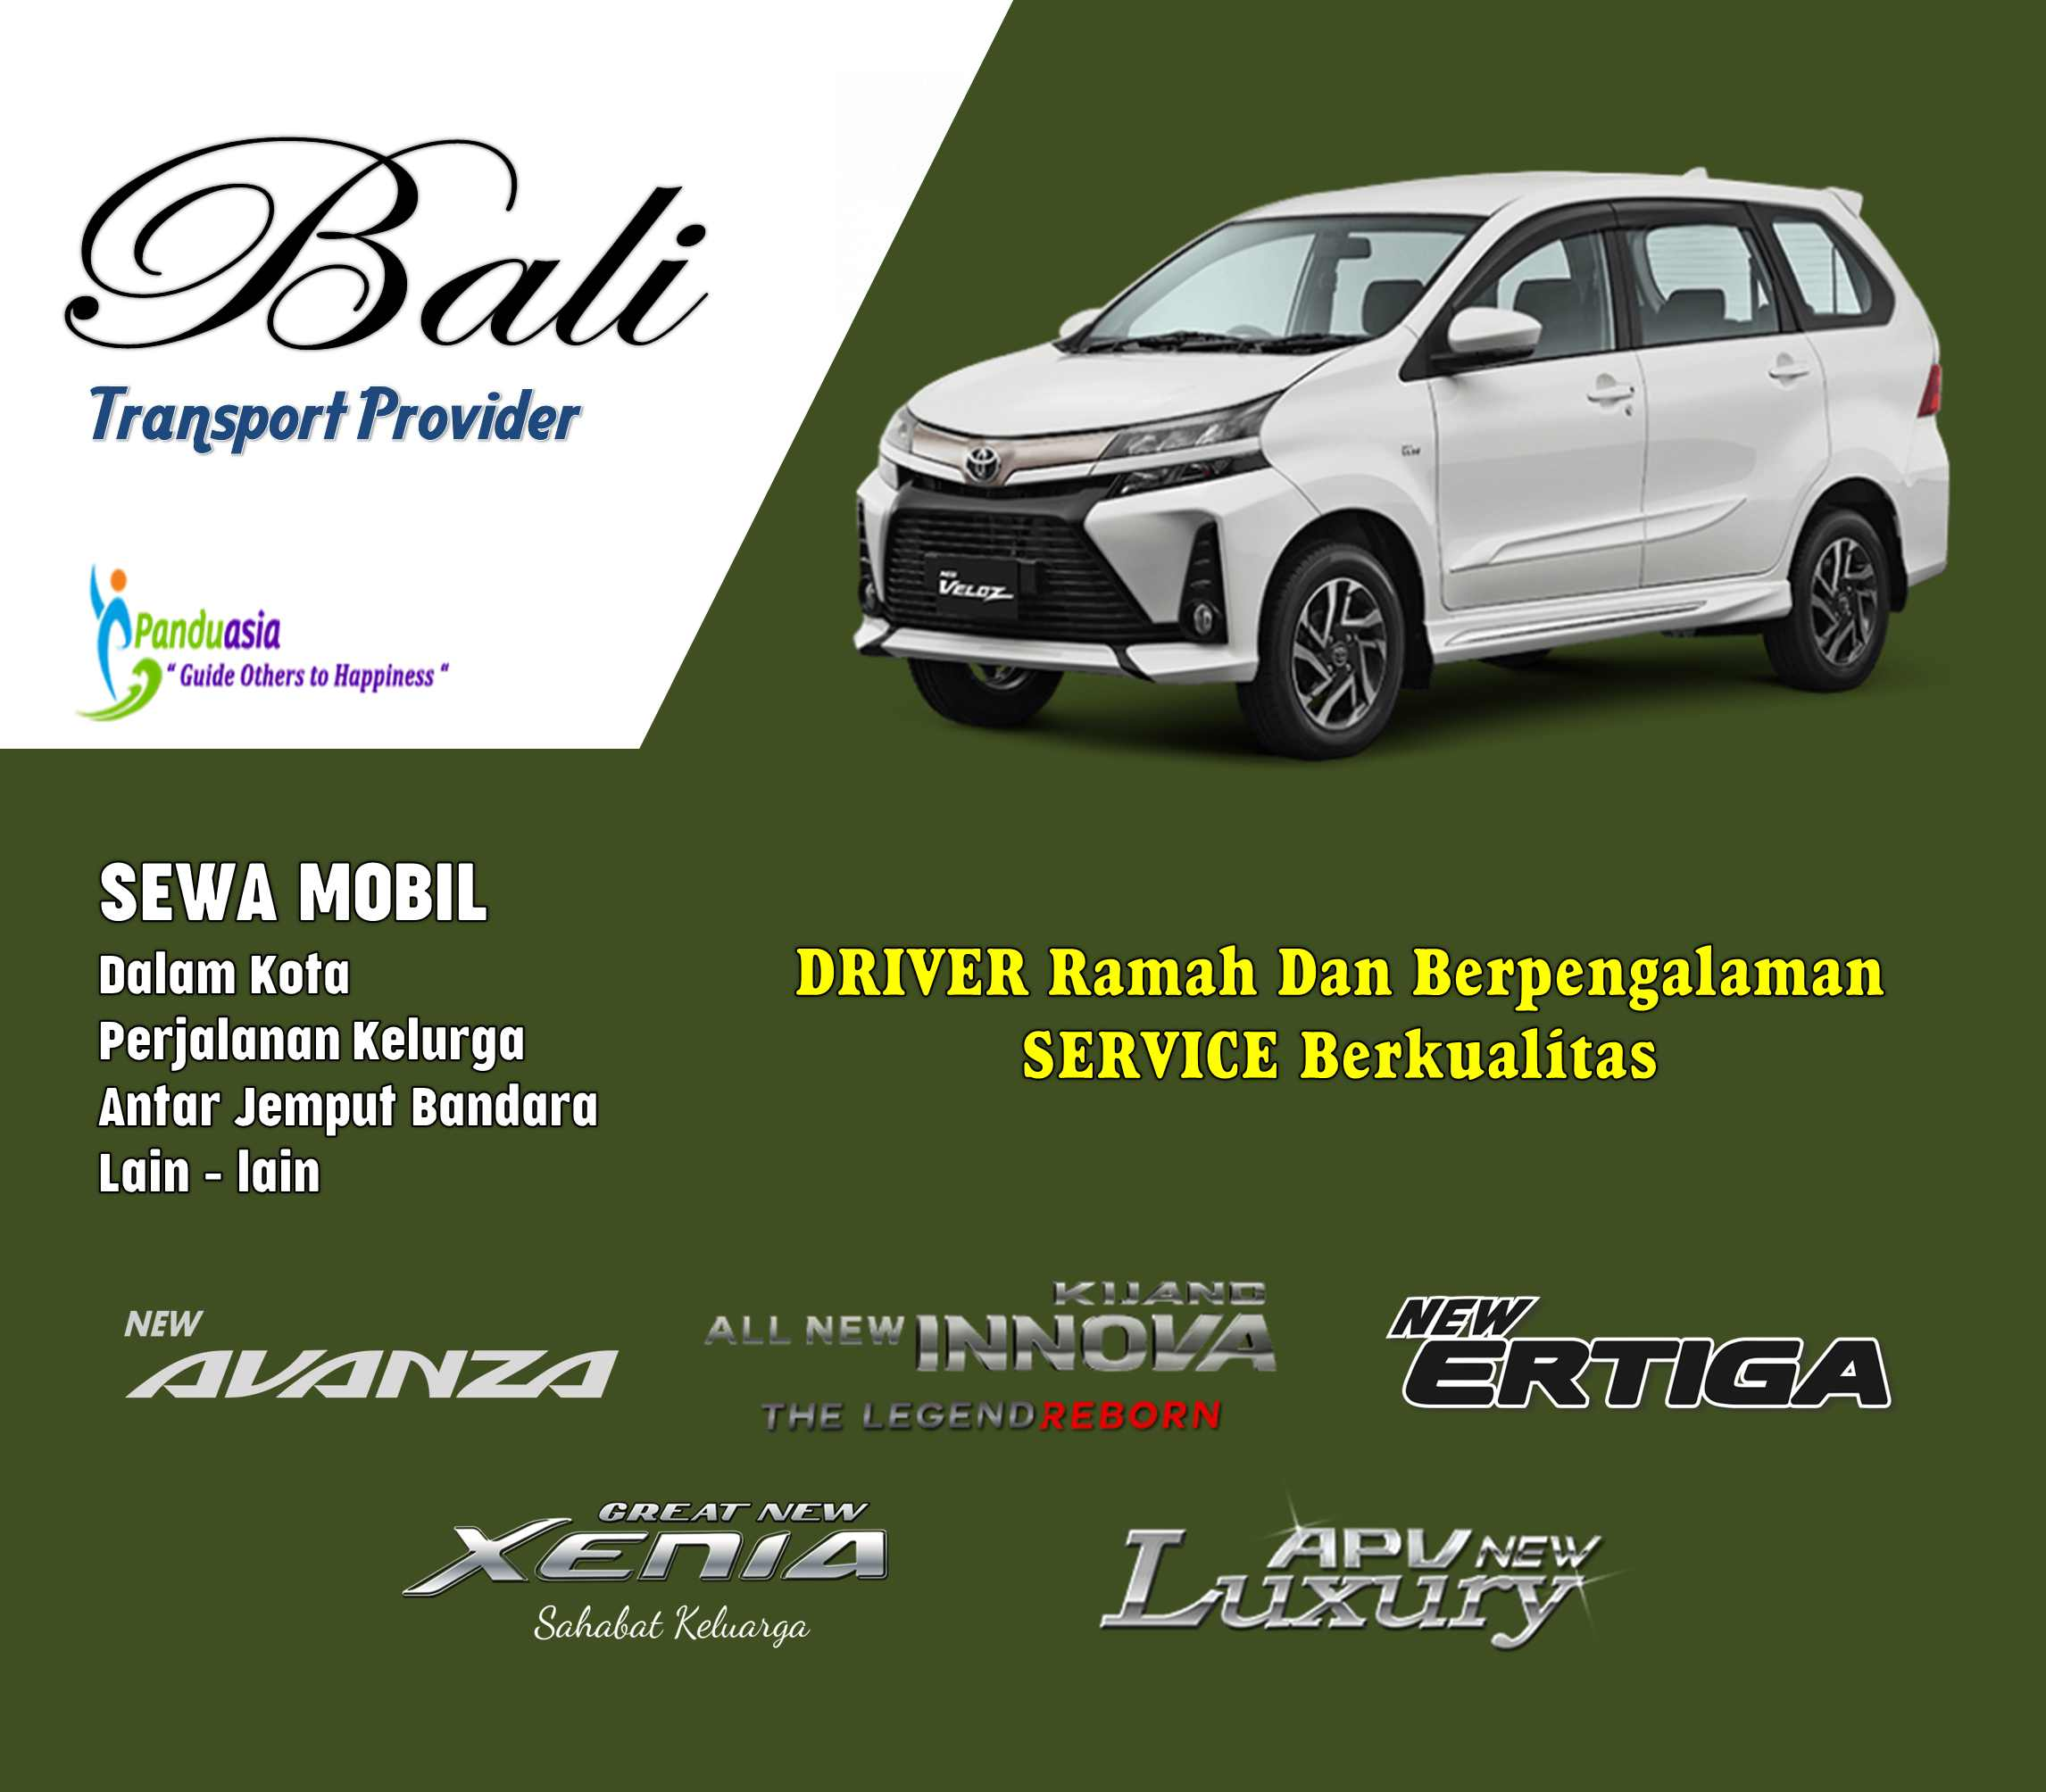 Car And Driver in BALI